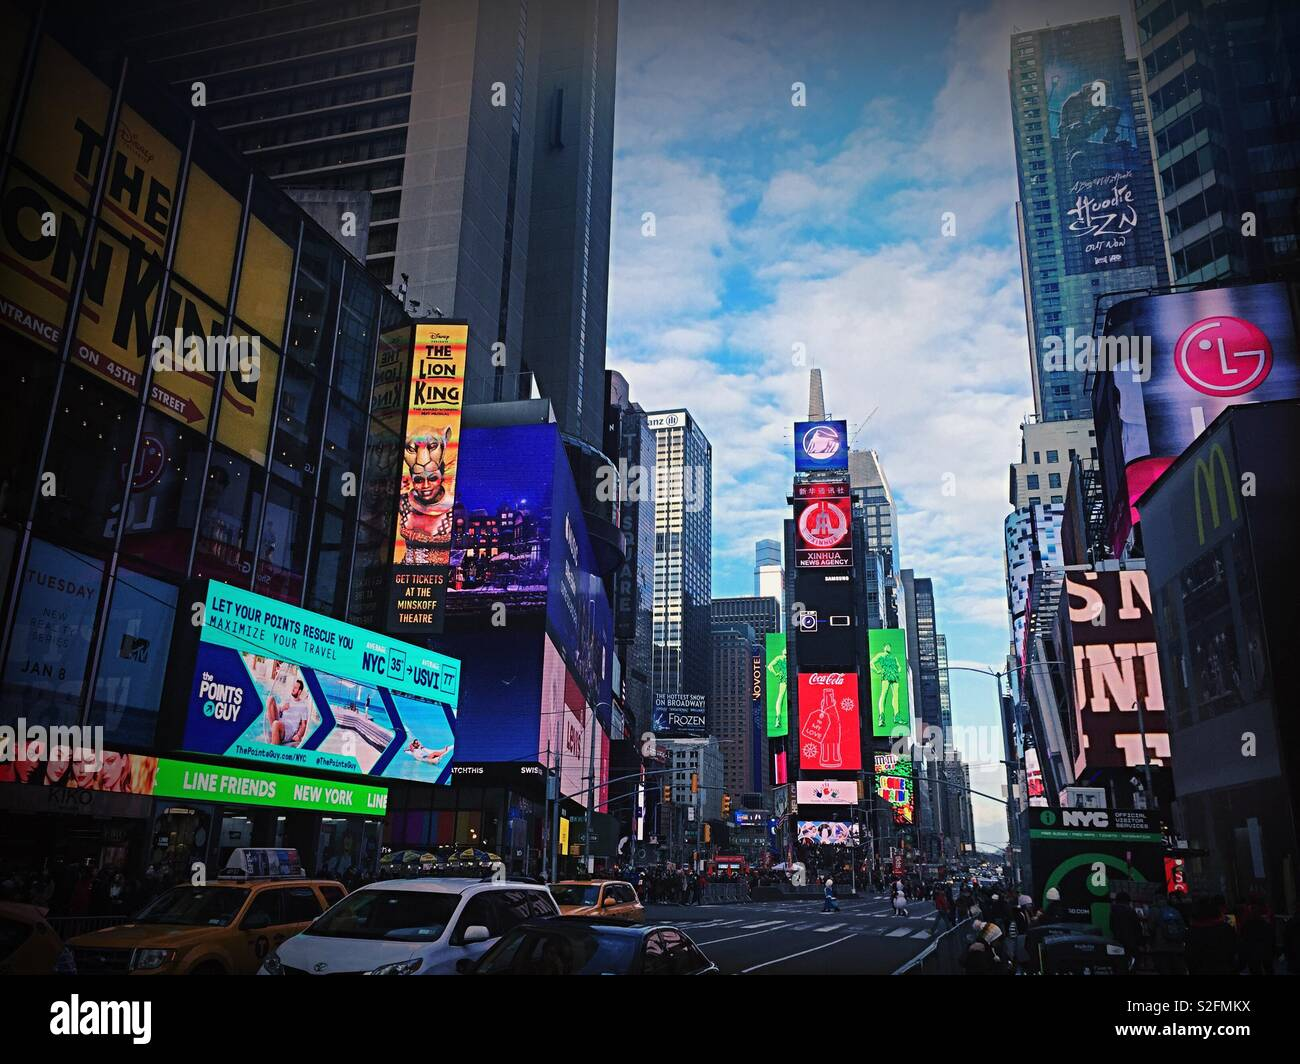 Automobile traffic and pedestrians in brightly lit Times Square, New York City, USA - Stock Image